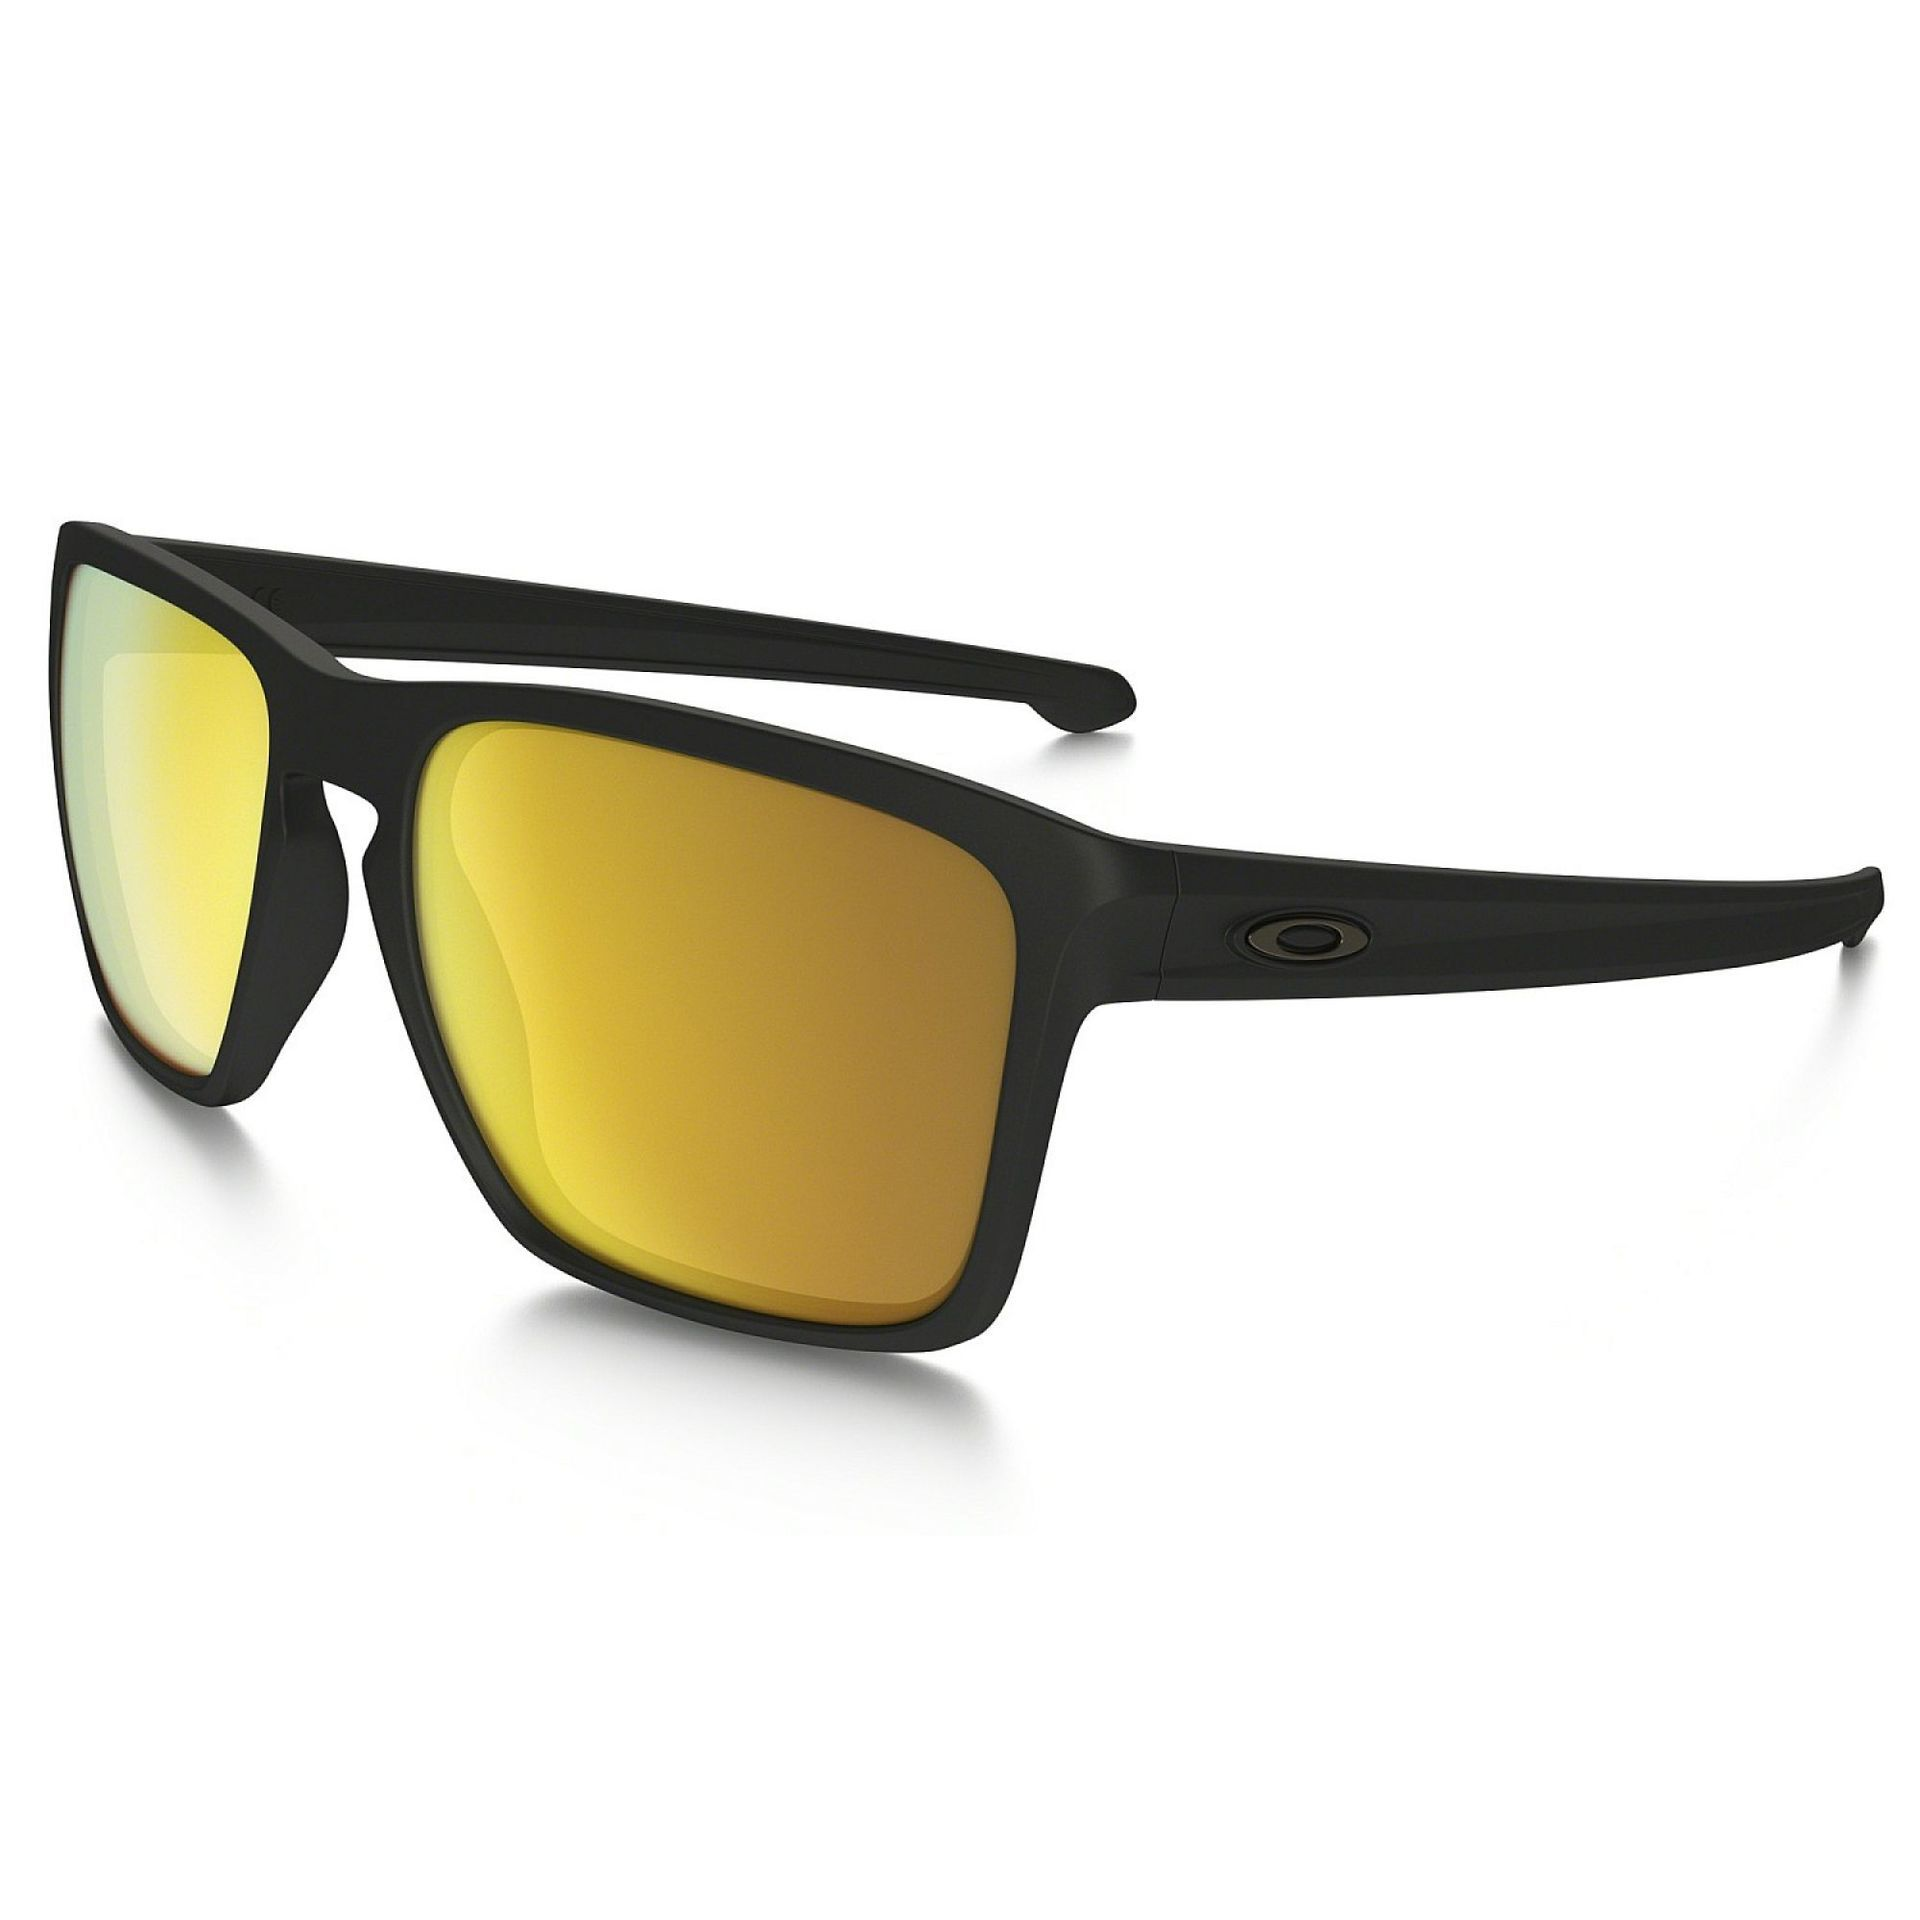 OKULARY OAKLEY SLIVER  MATTE BLACK W24K IRIDIUM